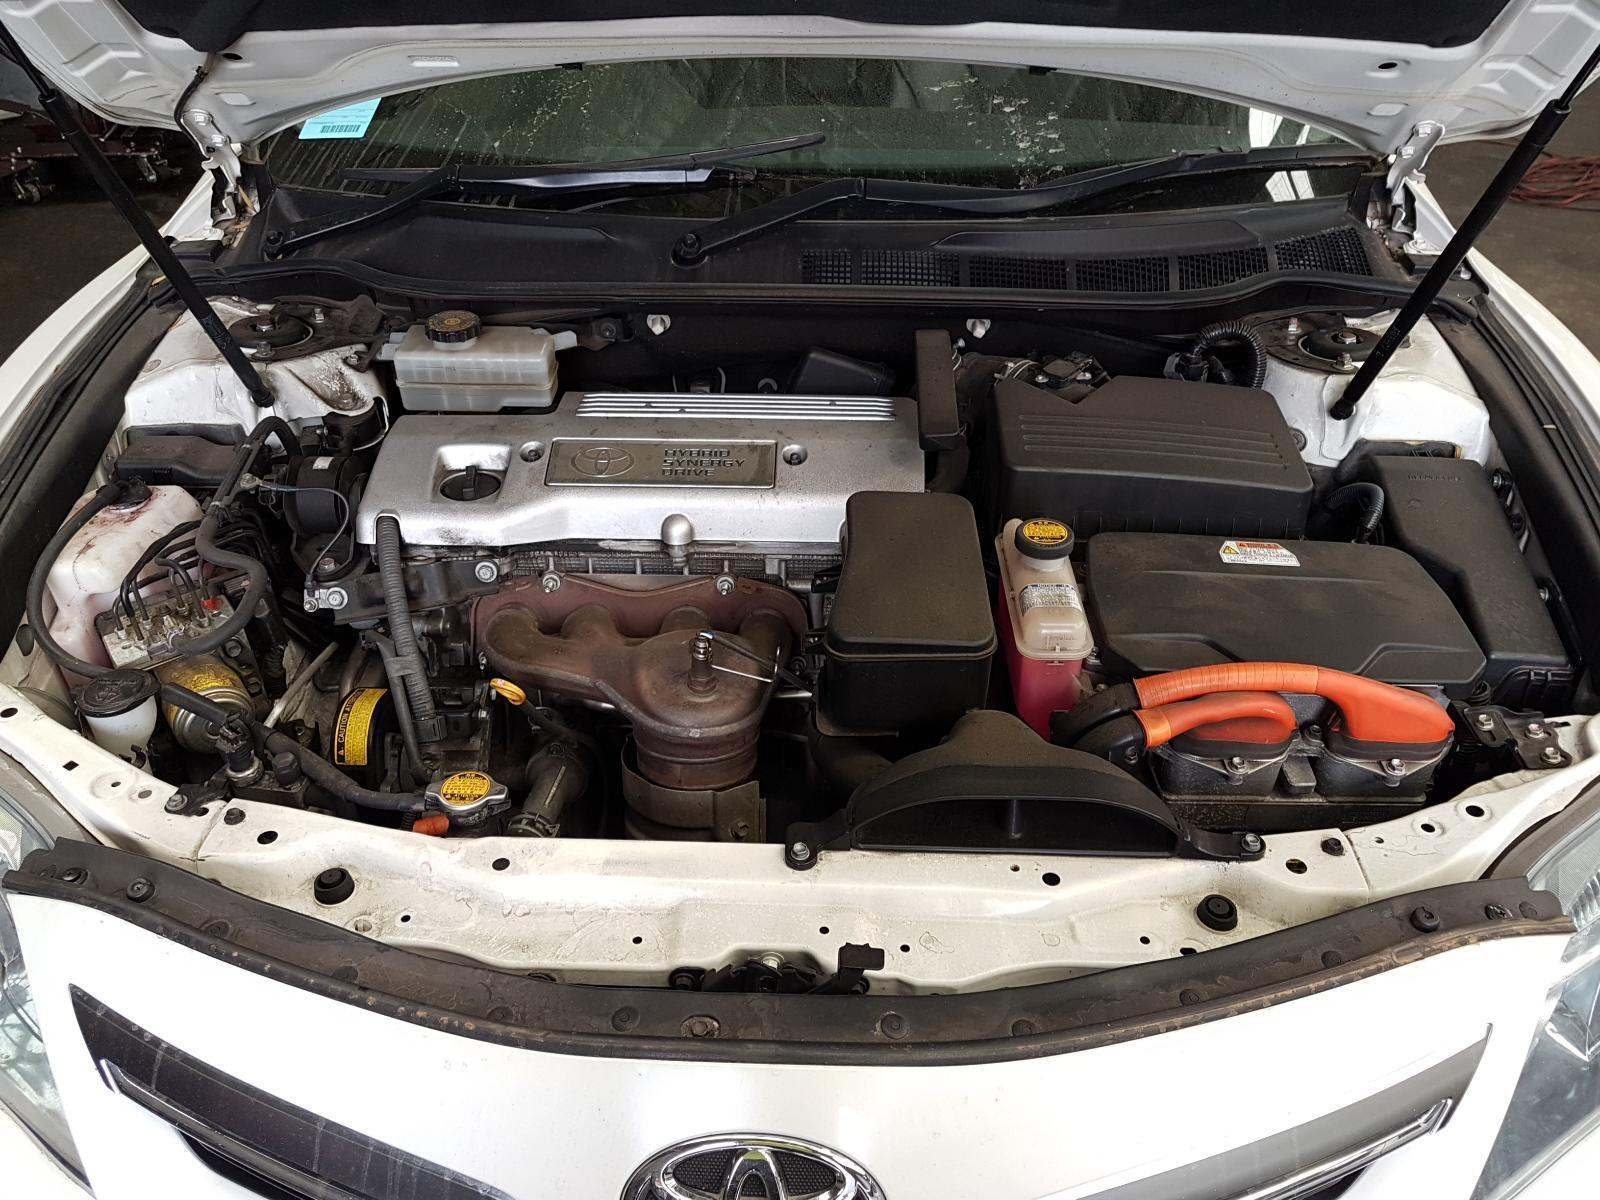 View Auto part Engine Toyota Camry 2010